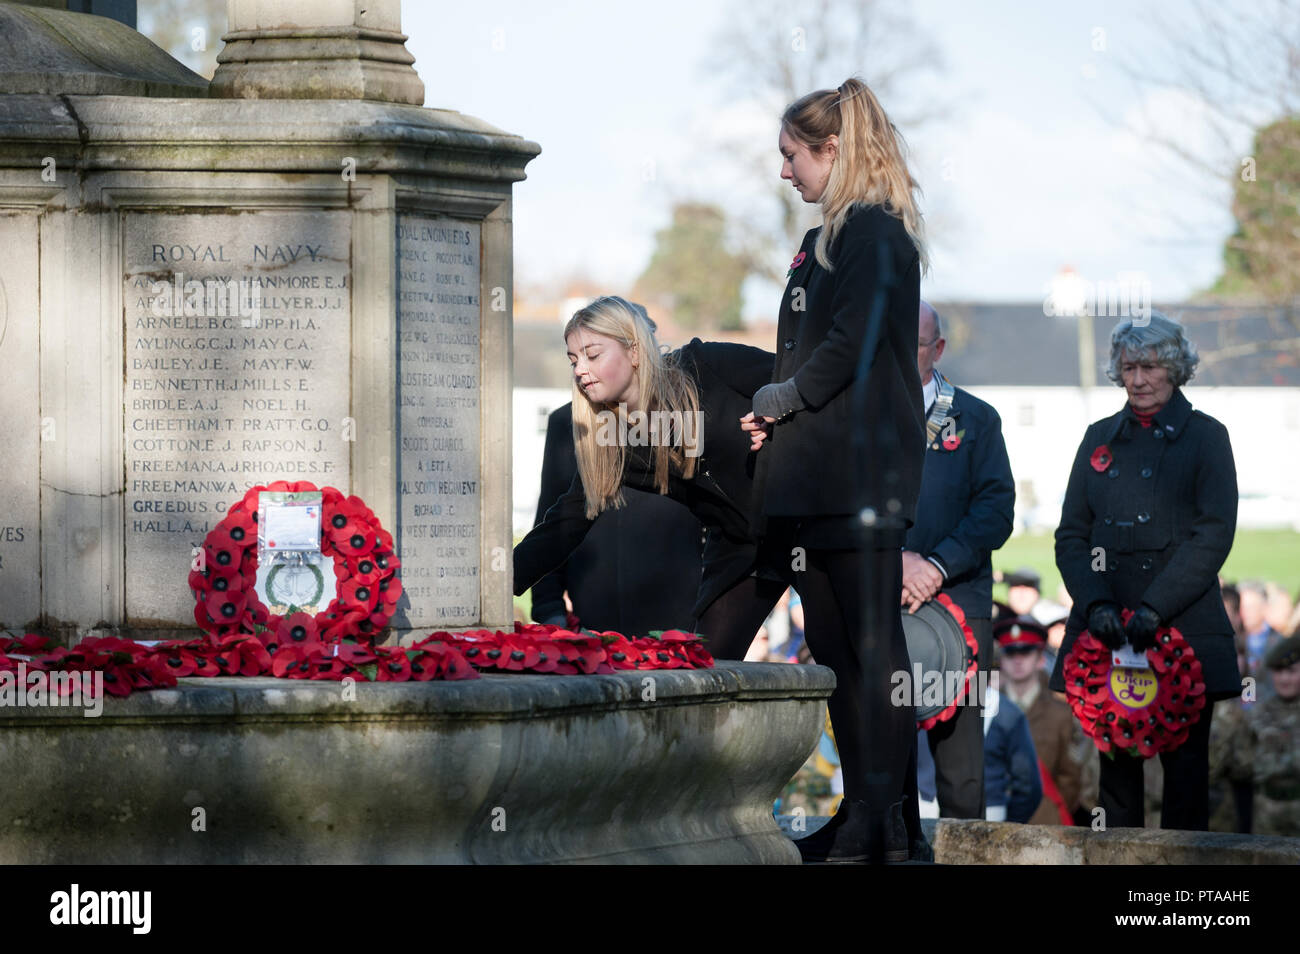 Chichester, West Sussex, UK. 12th November 2017. Two girls lay a poppy wreath at the cities war memorial during the Remembrance Sunday Service. - Stock Image